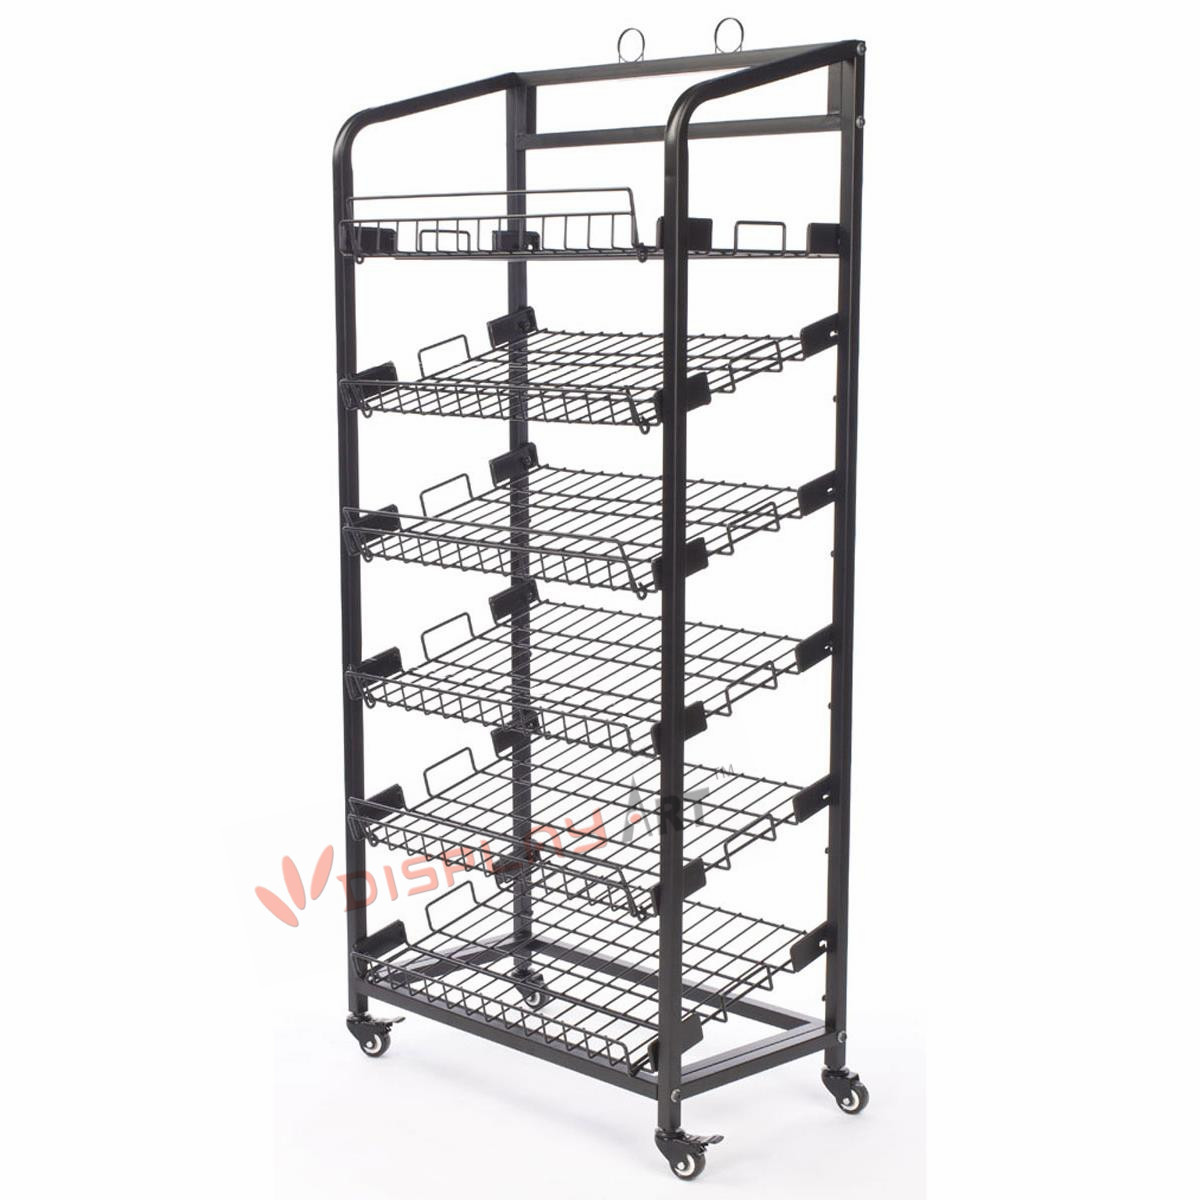 Bread Display Rack For Retail Store And Bakery